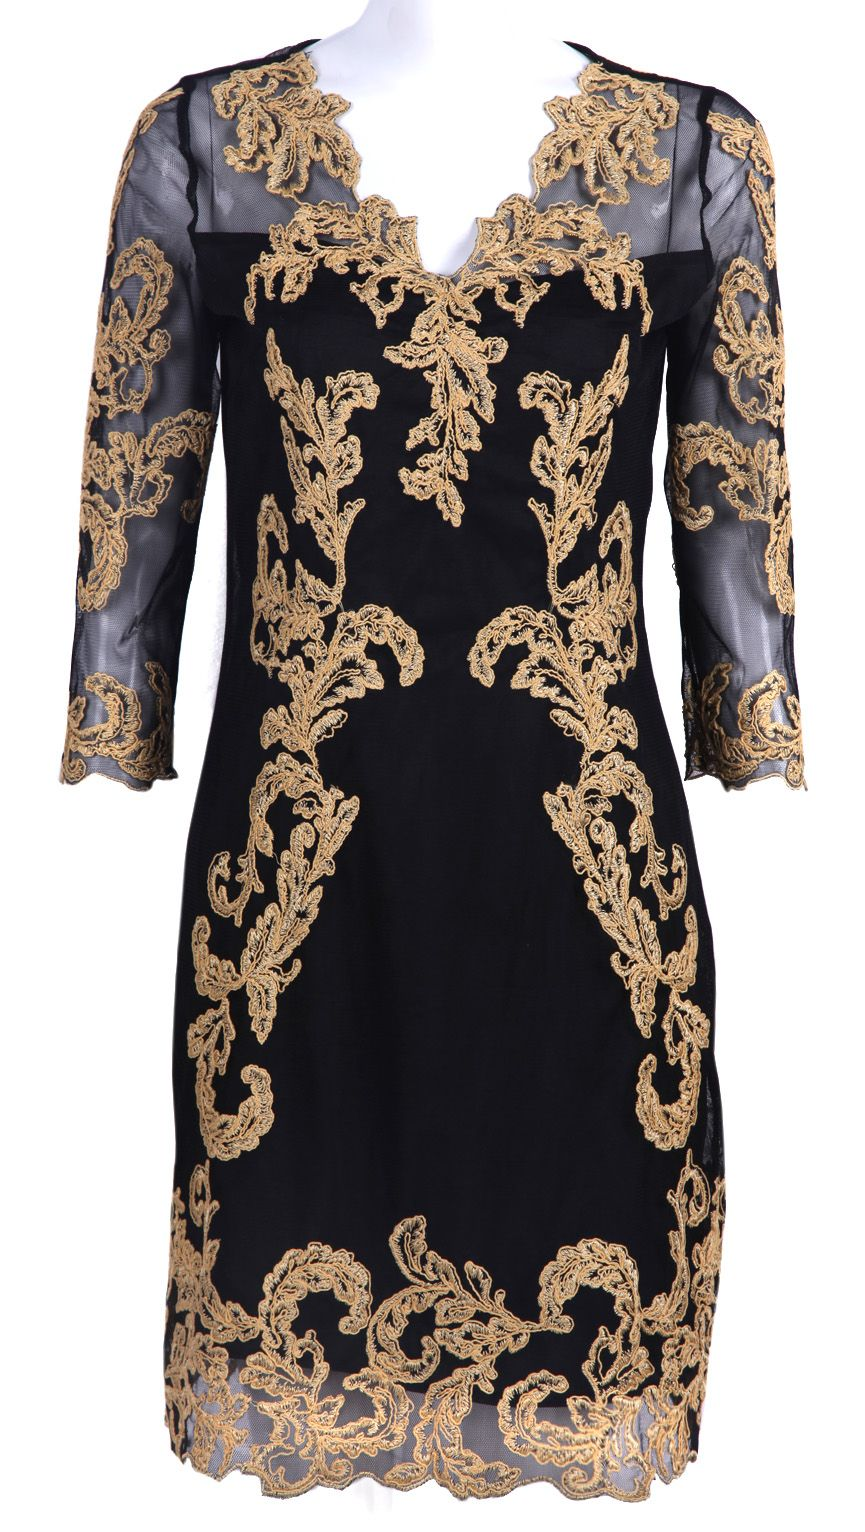 Black and gold silk dress